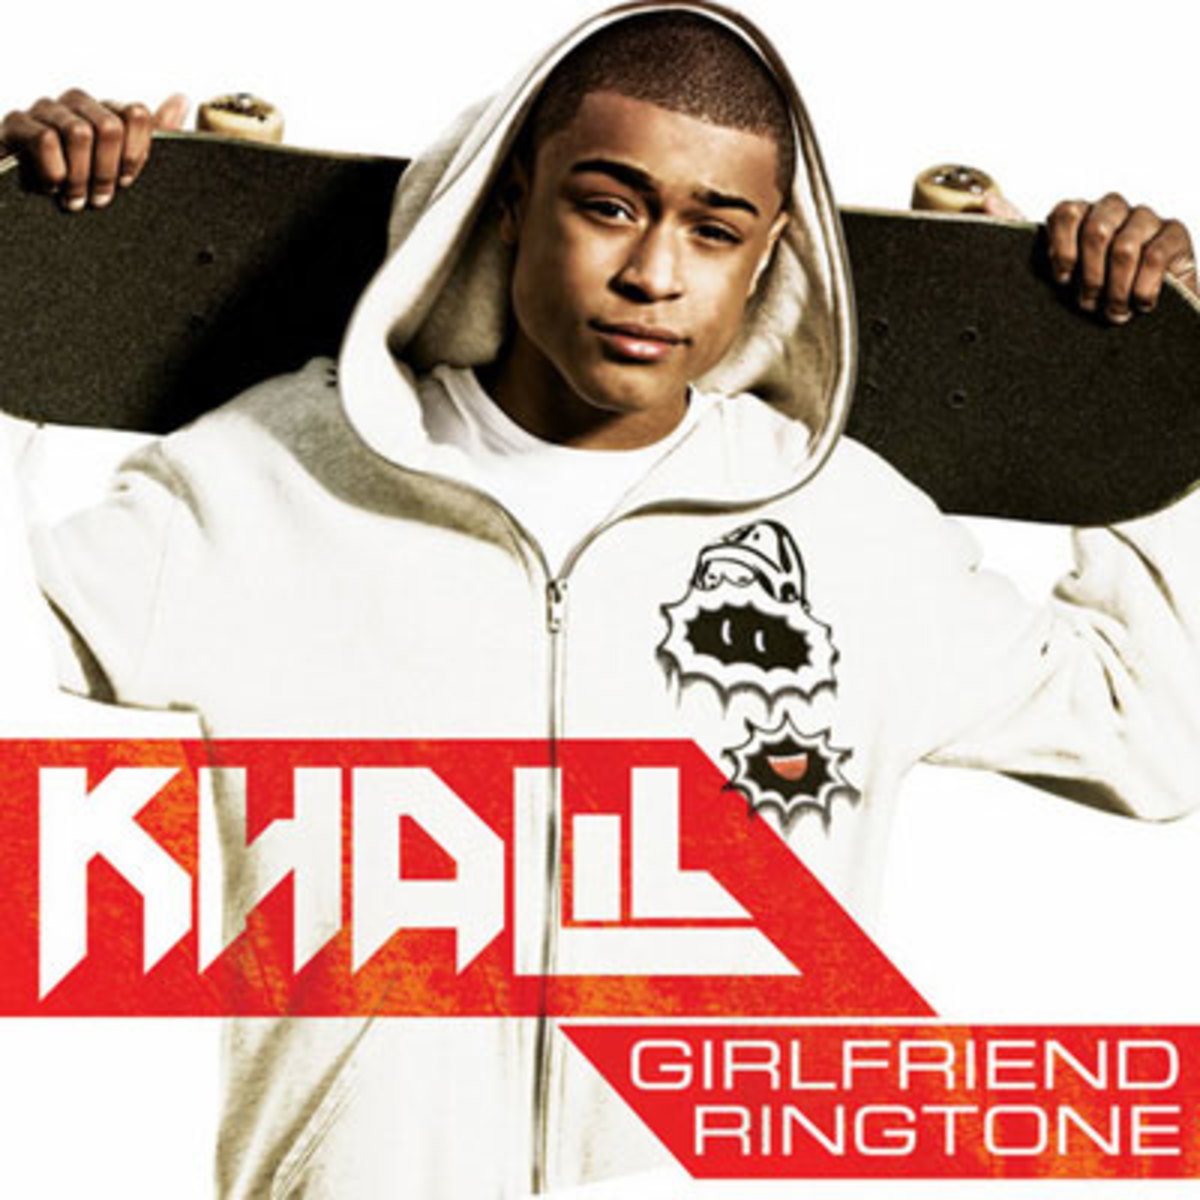 khalil-girlfriendringtone.jpg